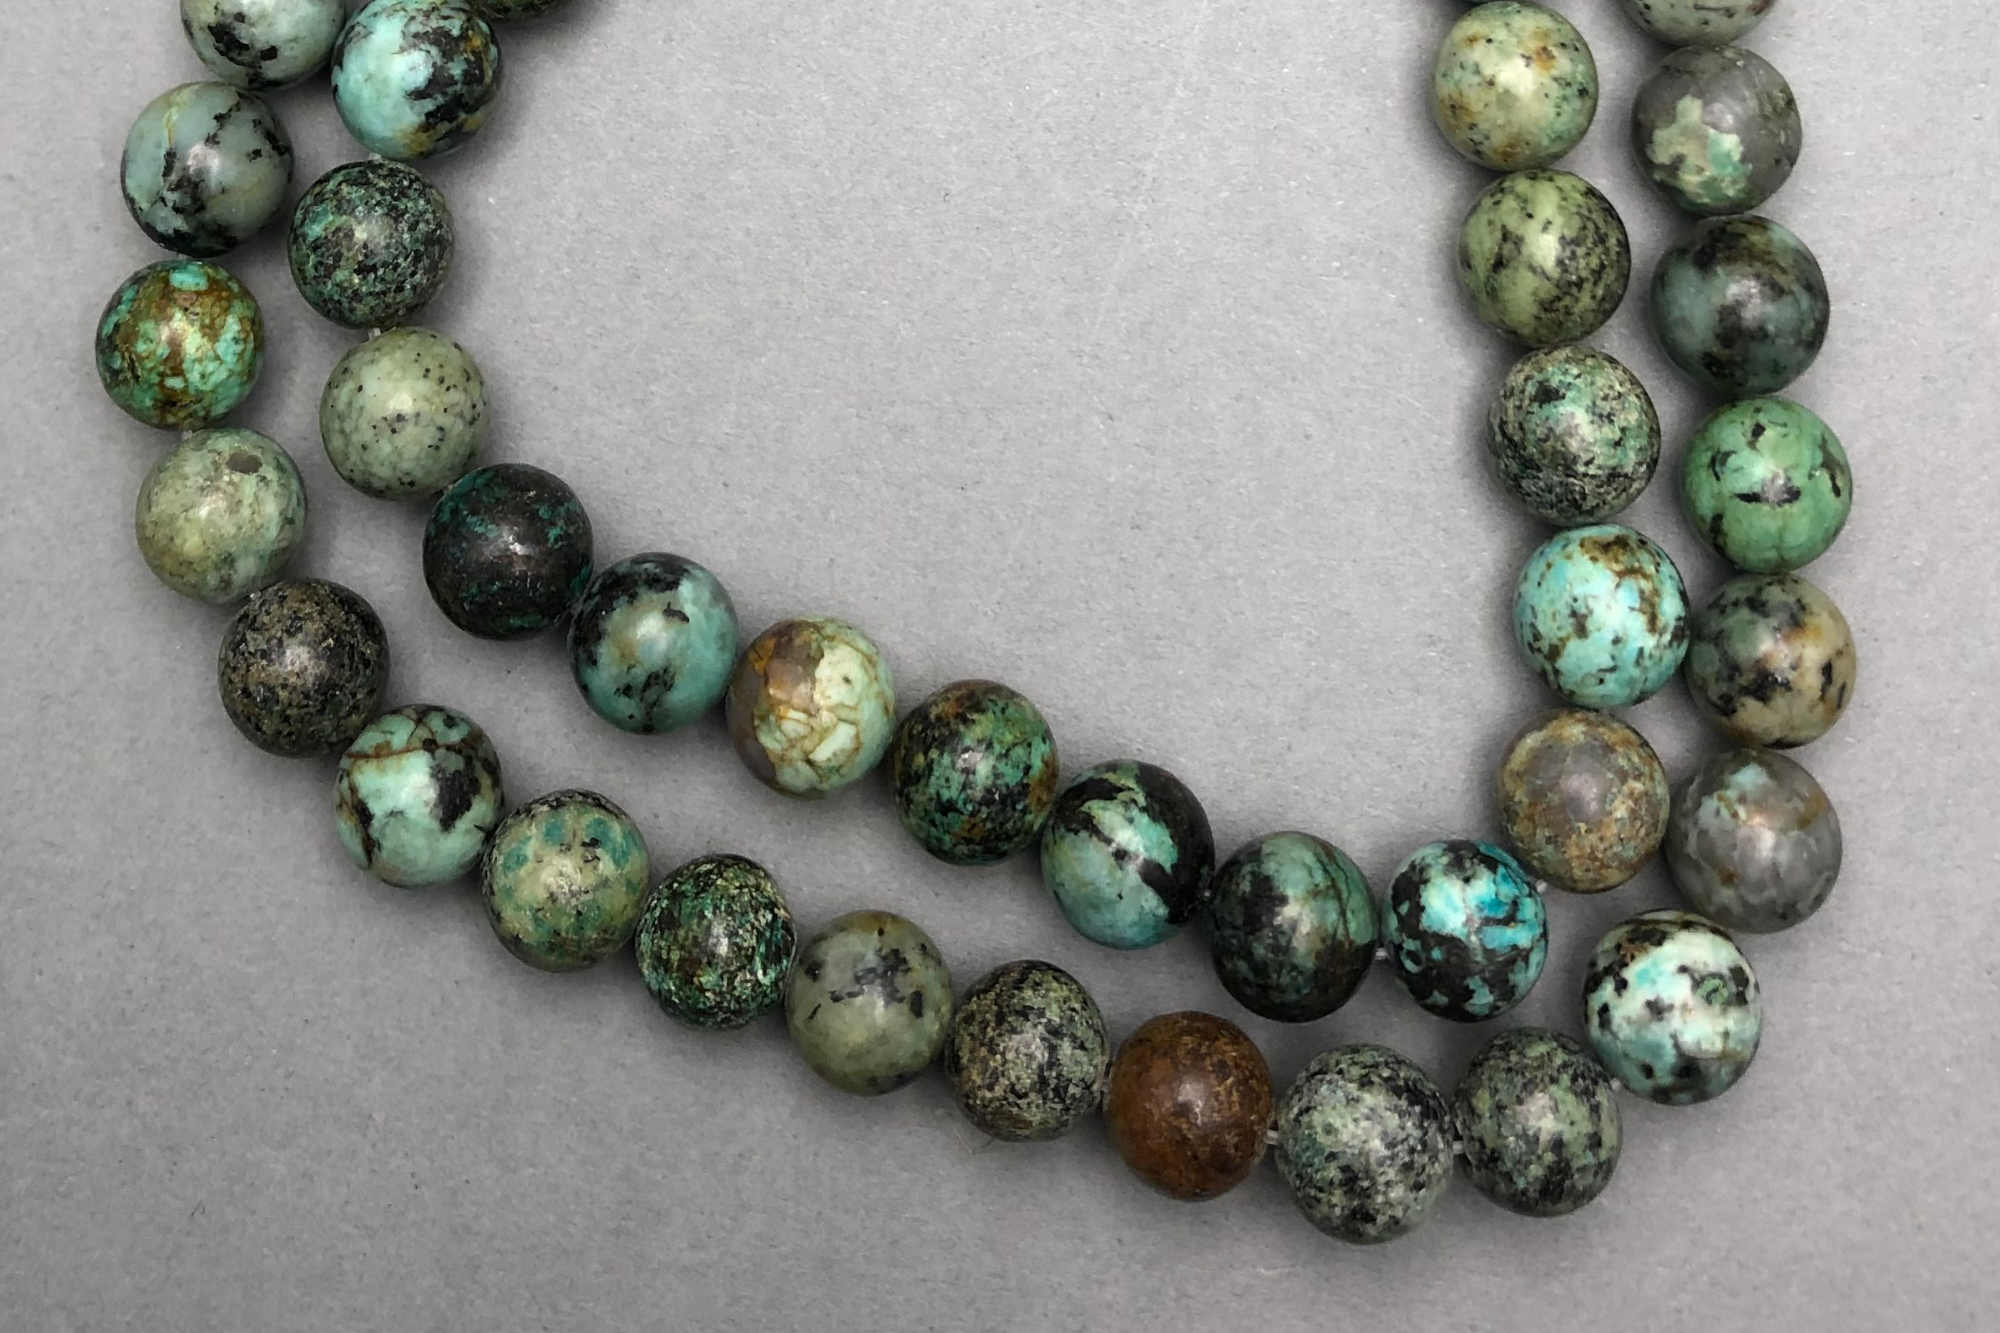 African Turquoise 38cm Strand, 8mm Round